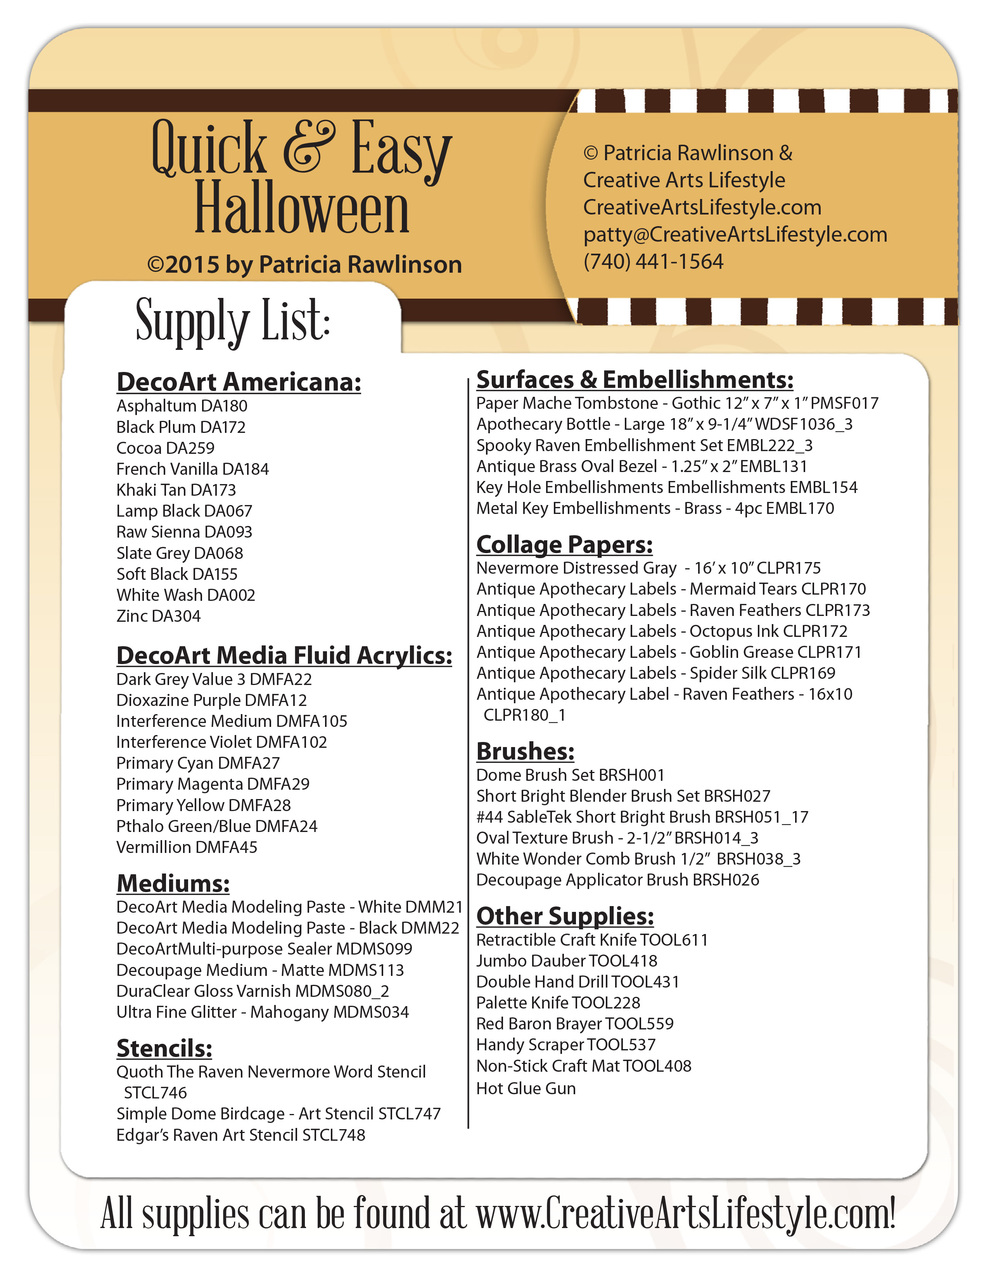 Quick and Easy Halloween Projects DVD - Patricia Rawlinson